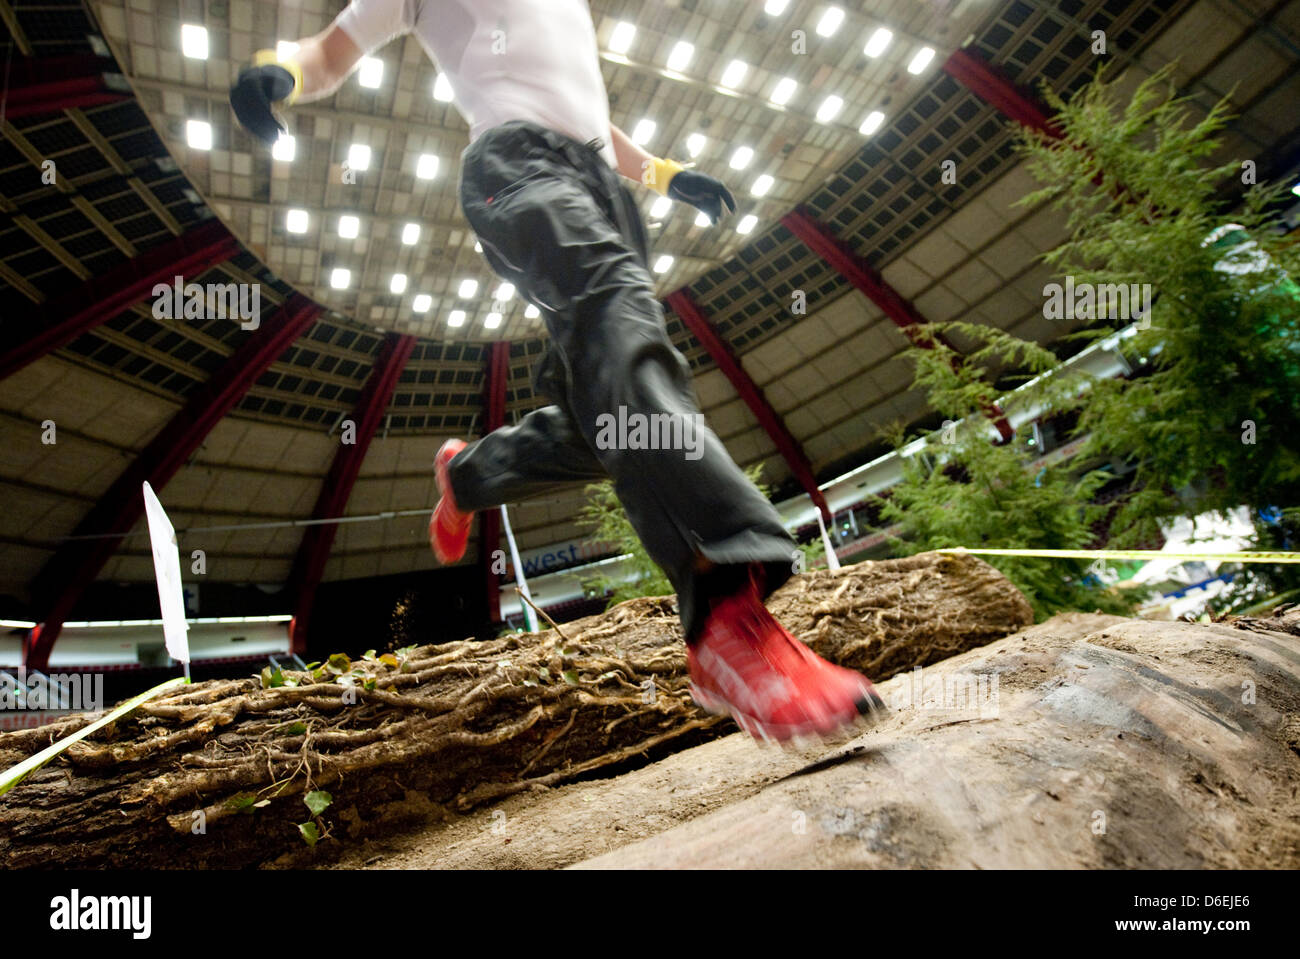 A runner jumps across an obstacle at the Westfalenhalle in Dortmund, Germany, 03 February 2012. People who like - Stock Image